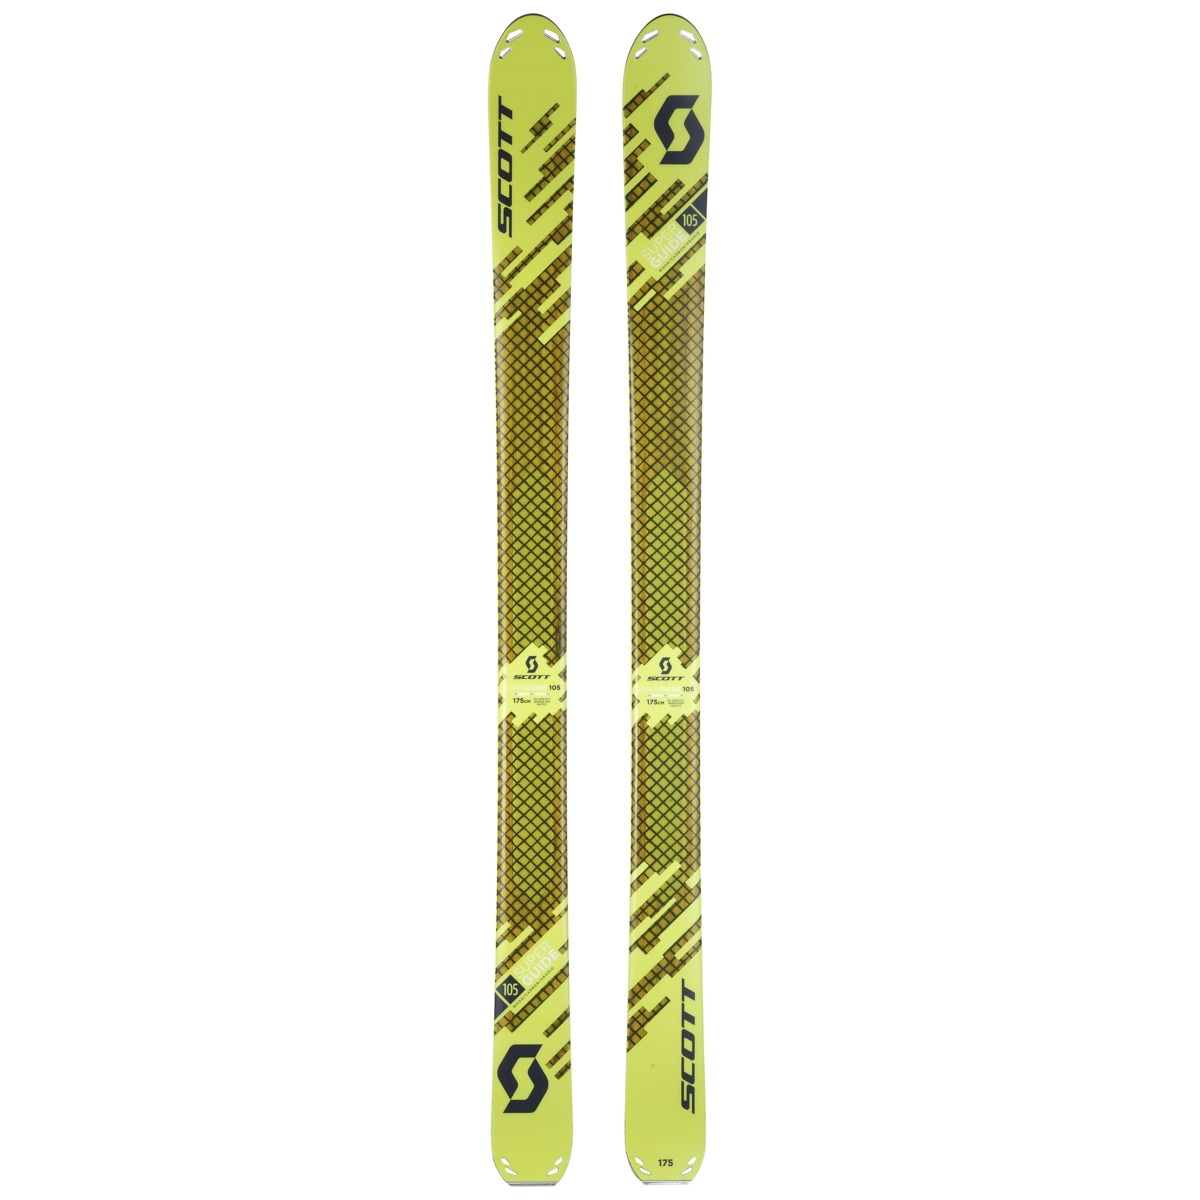 2017-18 Scott Superguide 105 Ski Touring And Backcountry Ski